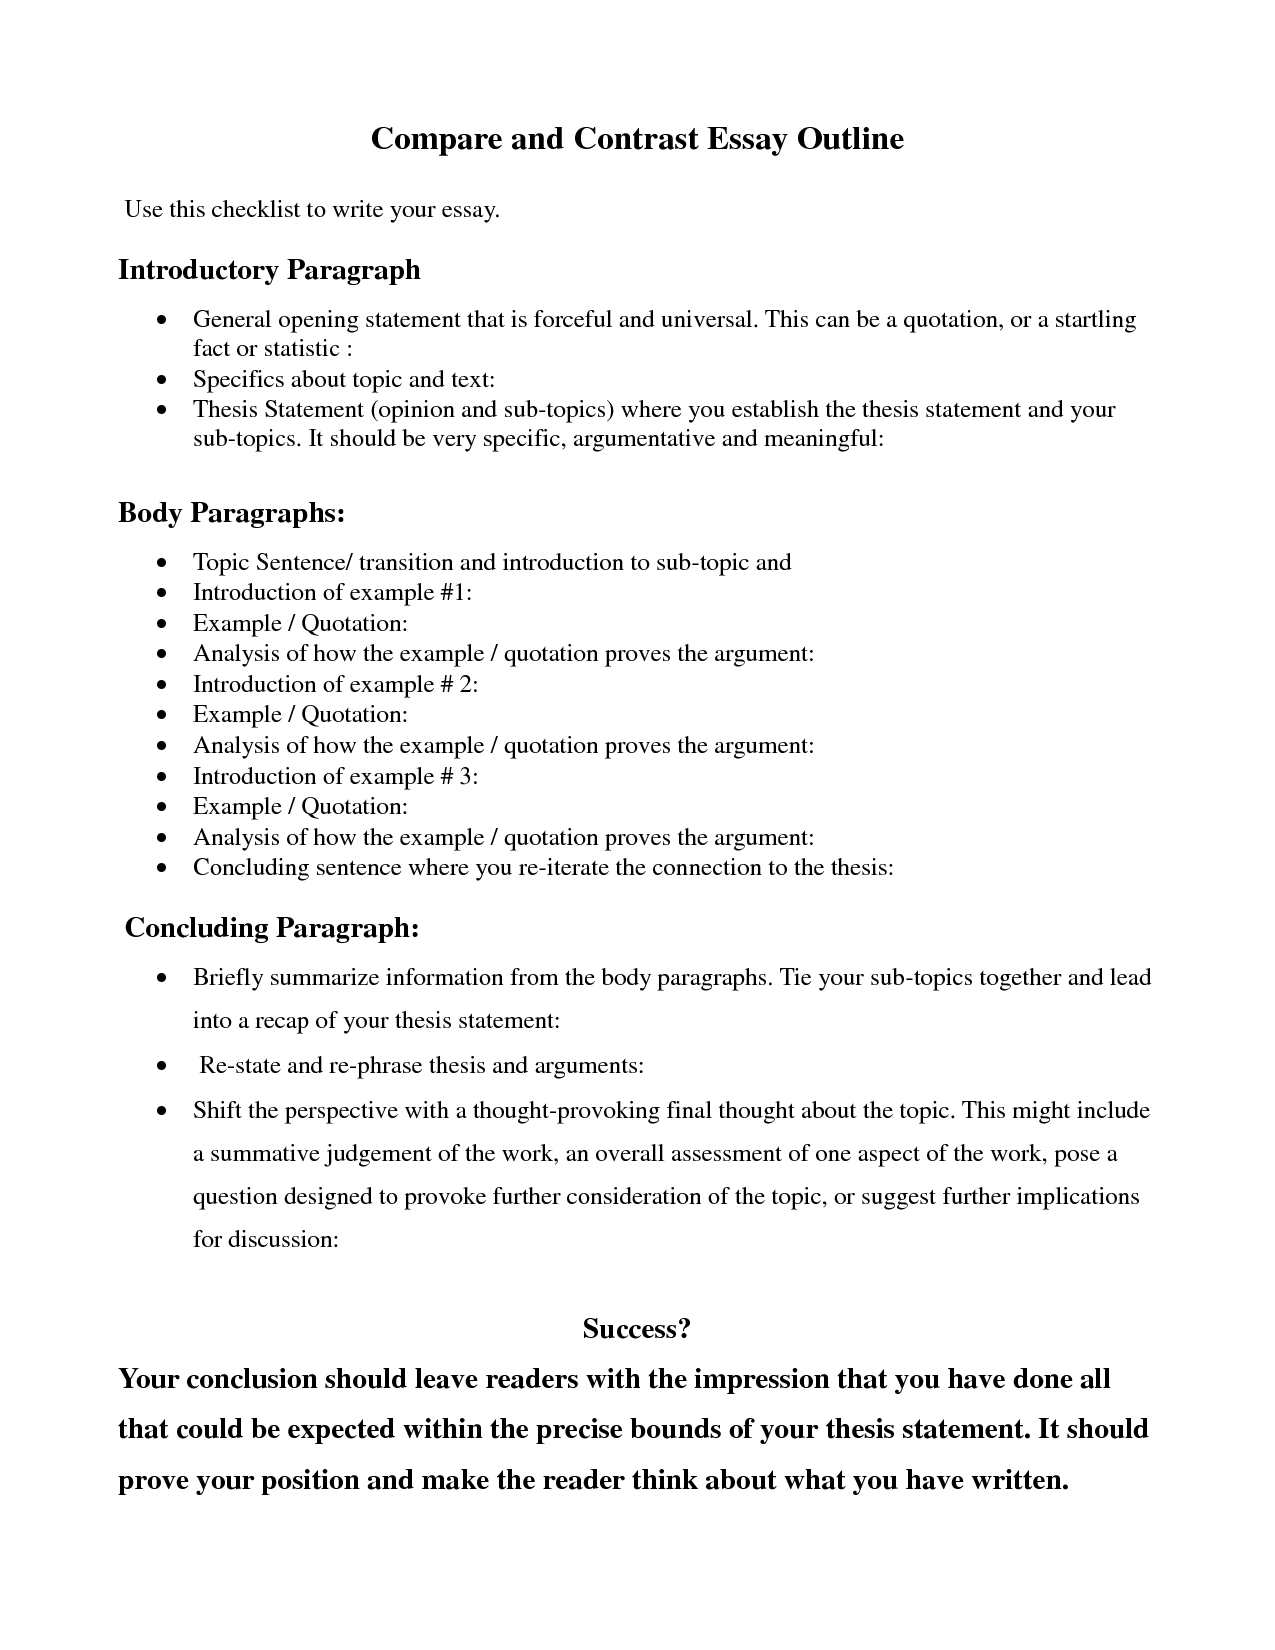 007 Argumentative Research Paper Vs Expository Essays Awful Full